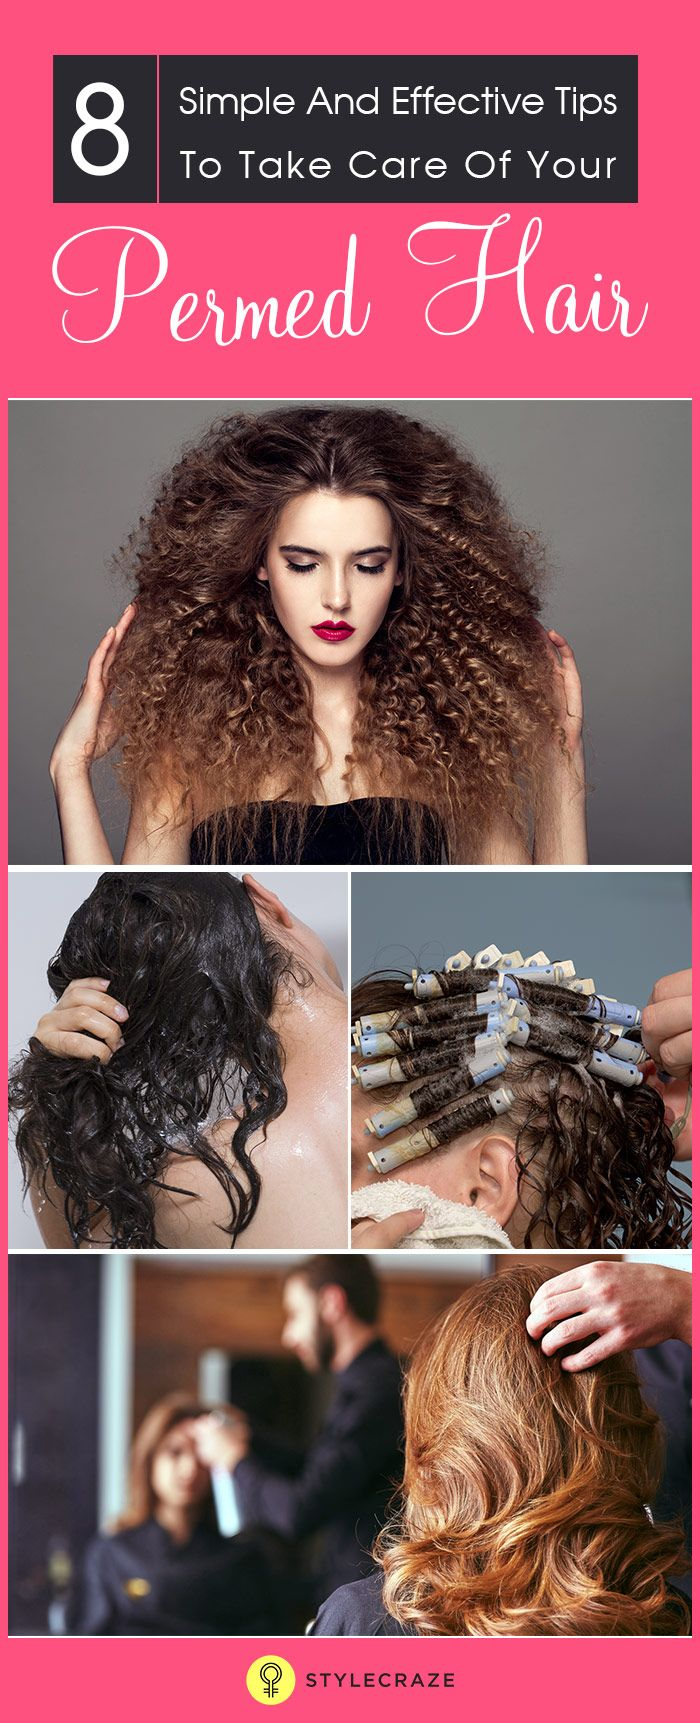 Undo straight perm - 8 Simple And Effective Tips To Take Care Of Your Permed Hair